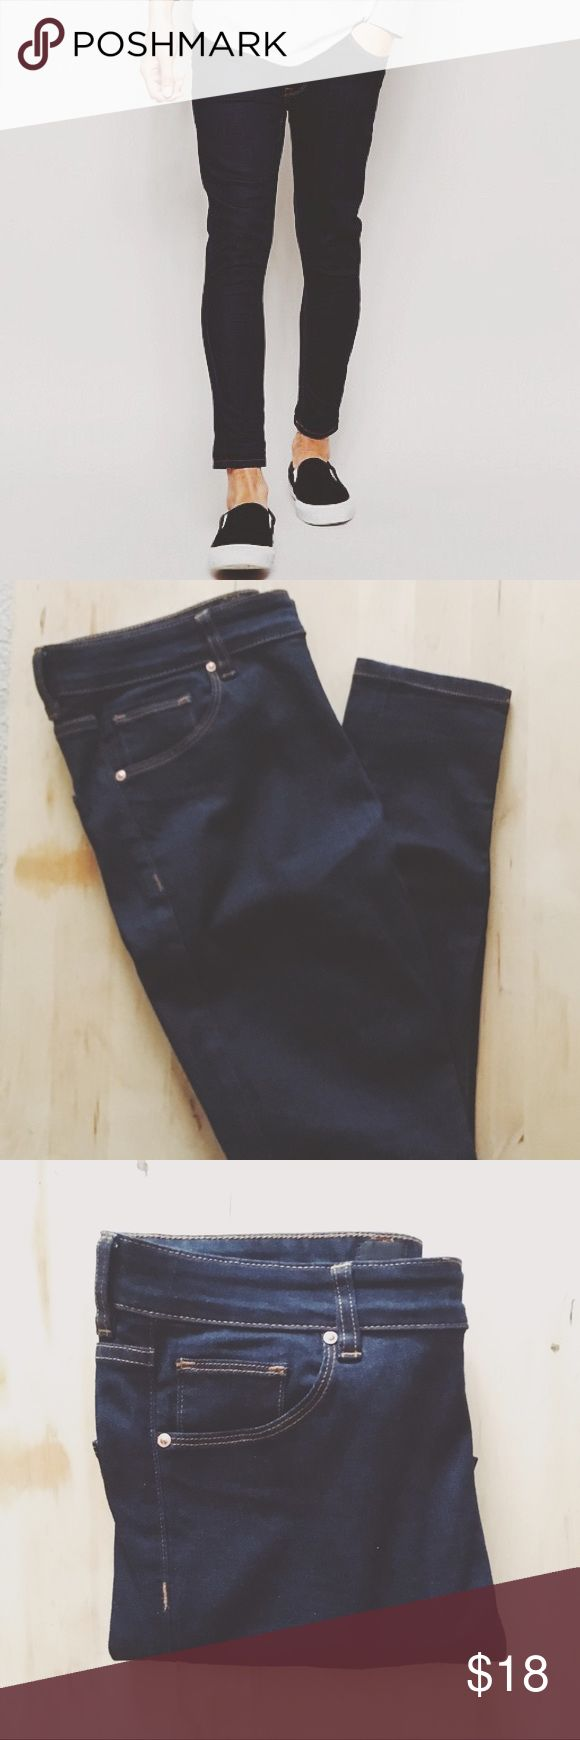 ASOS | Extreme Super Skinny Ankle Grazer Jeans Very skinny/ tight fit. Waist 32. Indigo. Never worn. ASOS Jeans Skinny